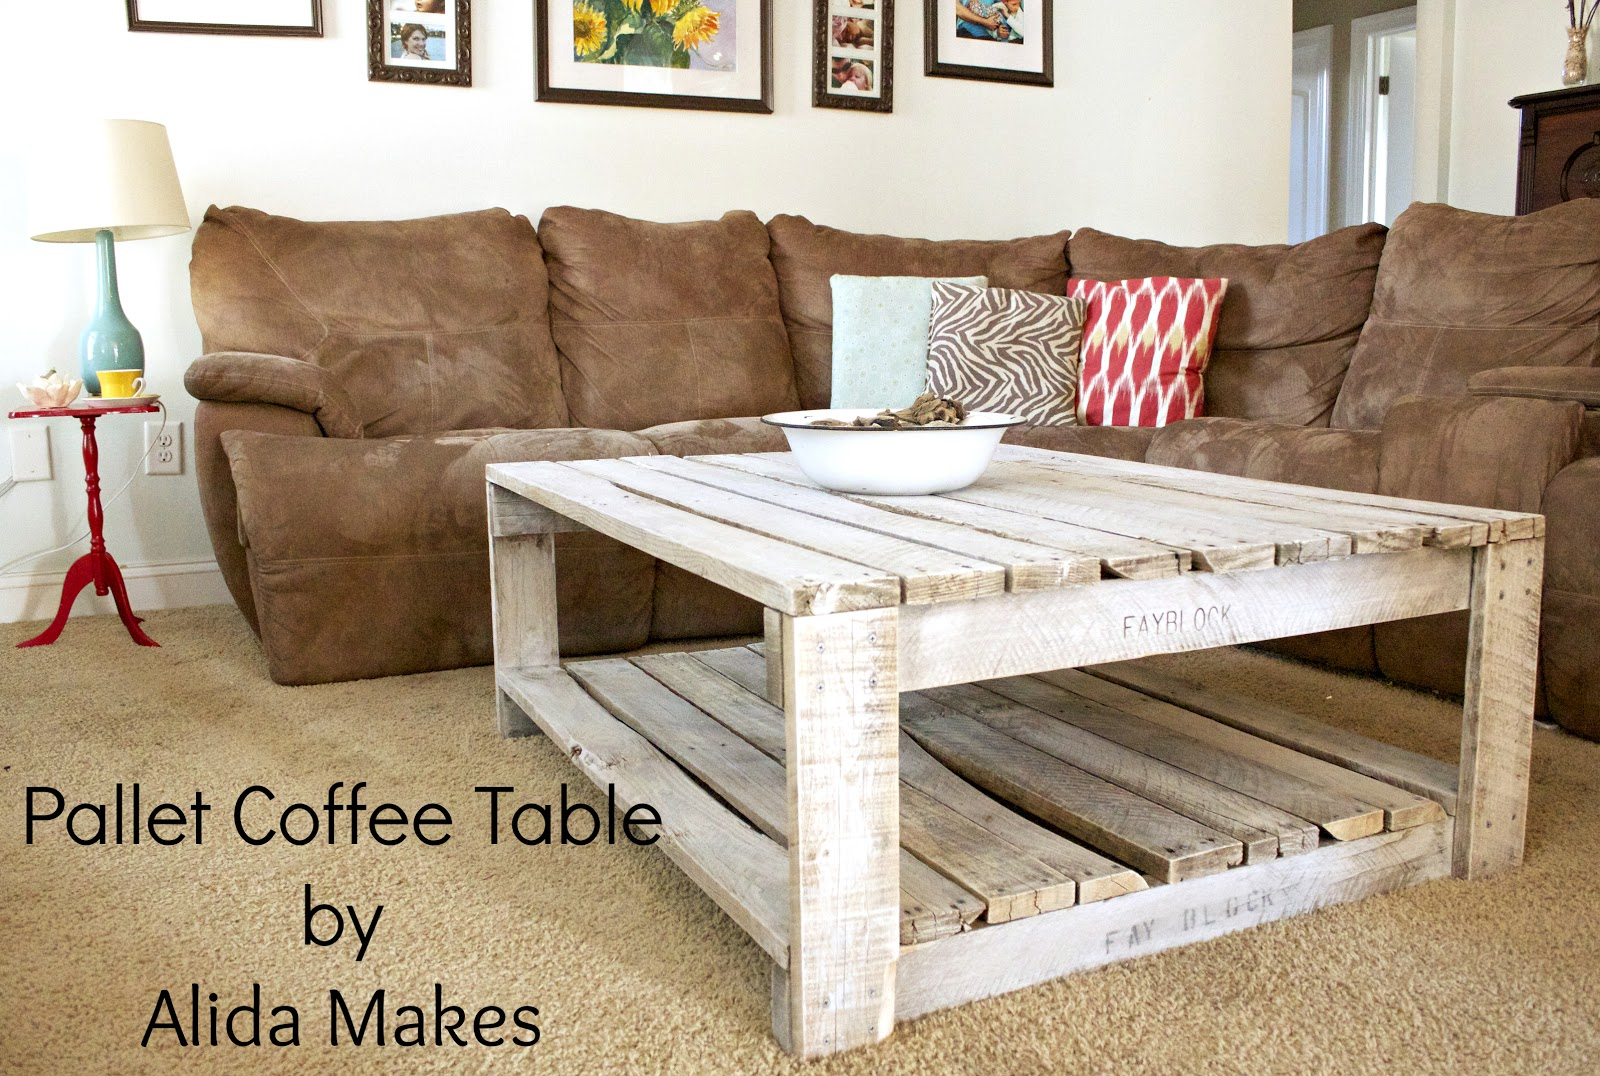 Diy pallet coffe table with white wash paint instructions - How to make table out of wood pallets ...